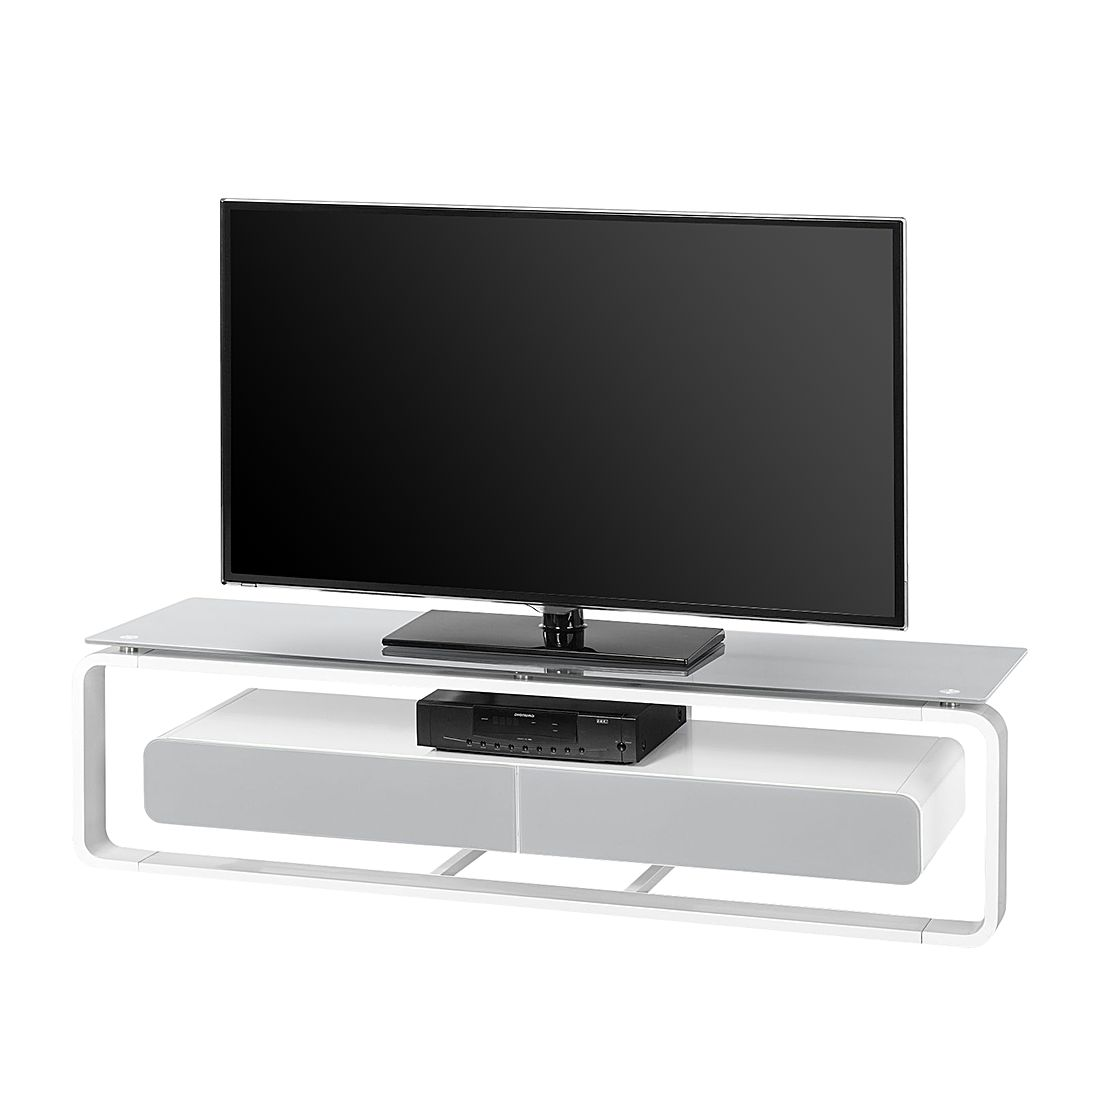 tv rack shanon wei glas platingrau 150 cm loftscape jetzt kaufen. Black Bedroom Furniture Sets. Home Design Ideas